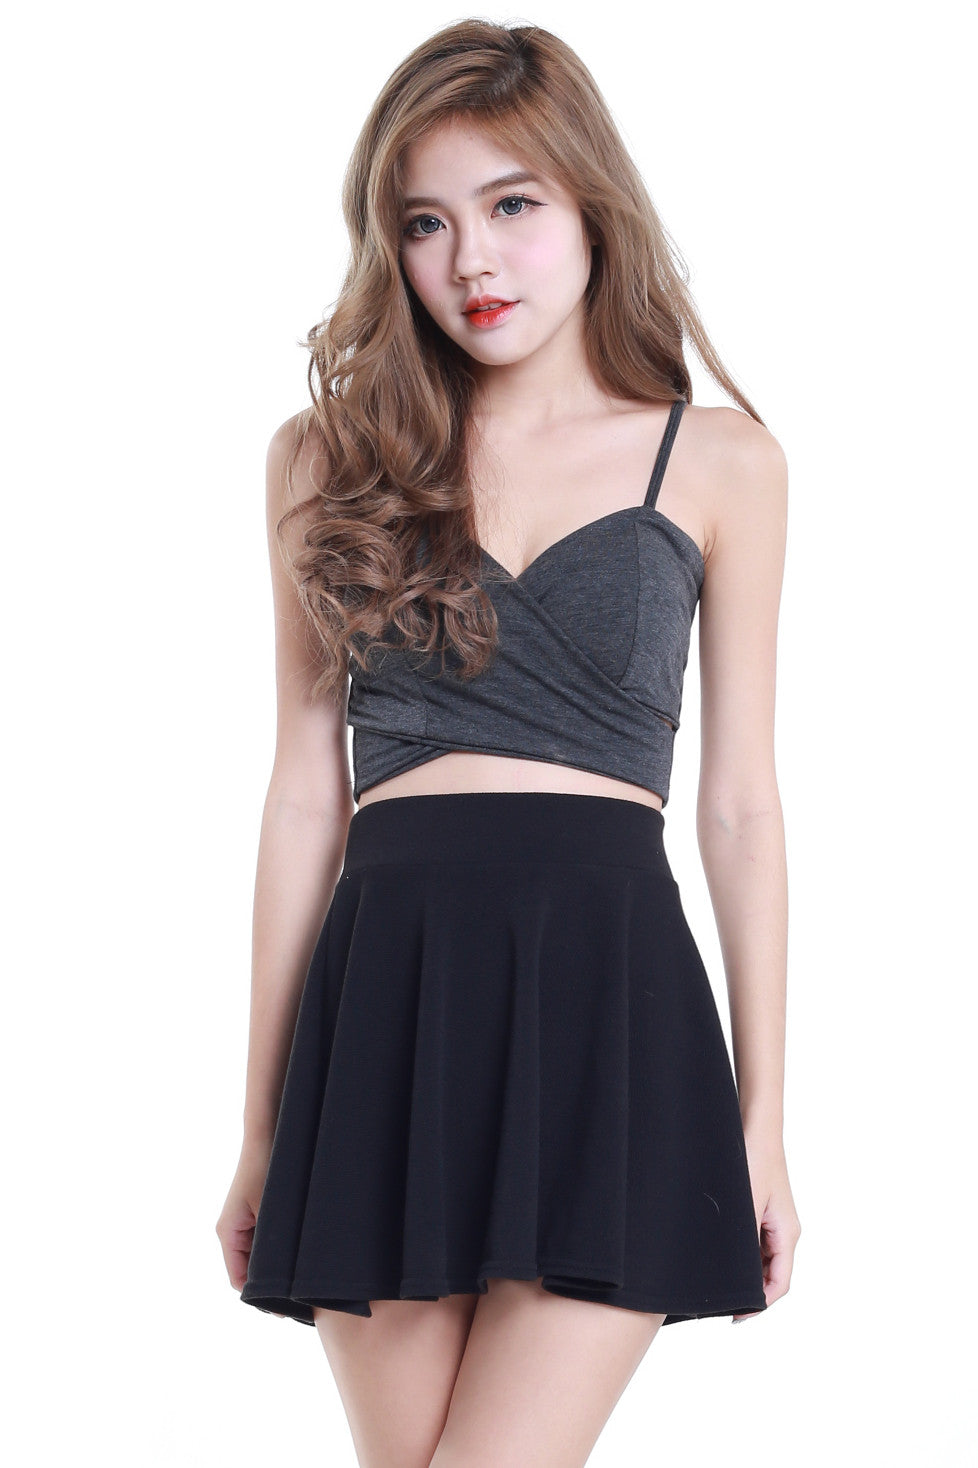 Underwrap Bralet (Dark Grey) -  - 6